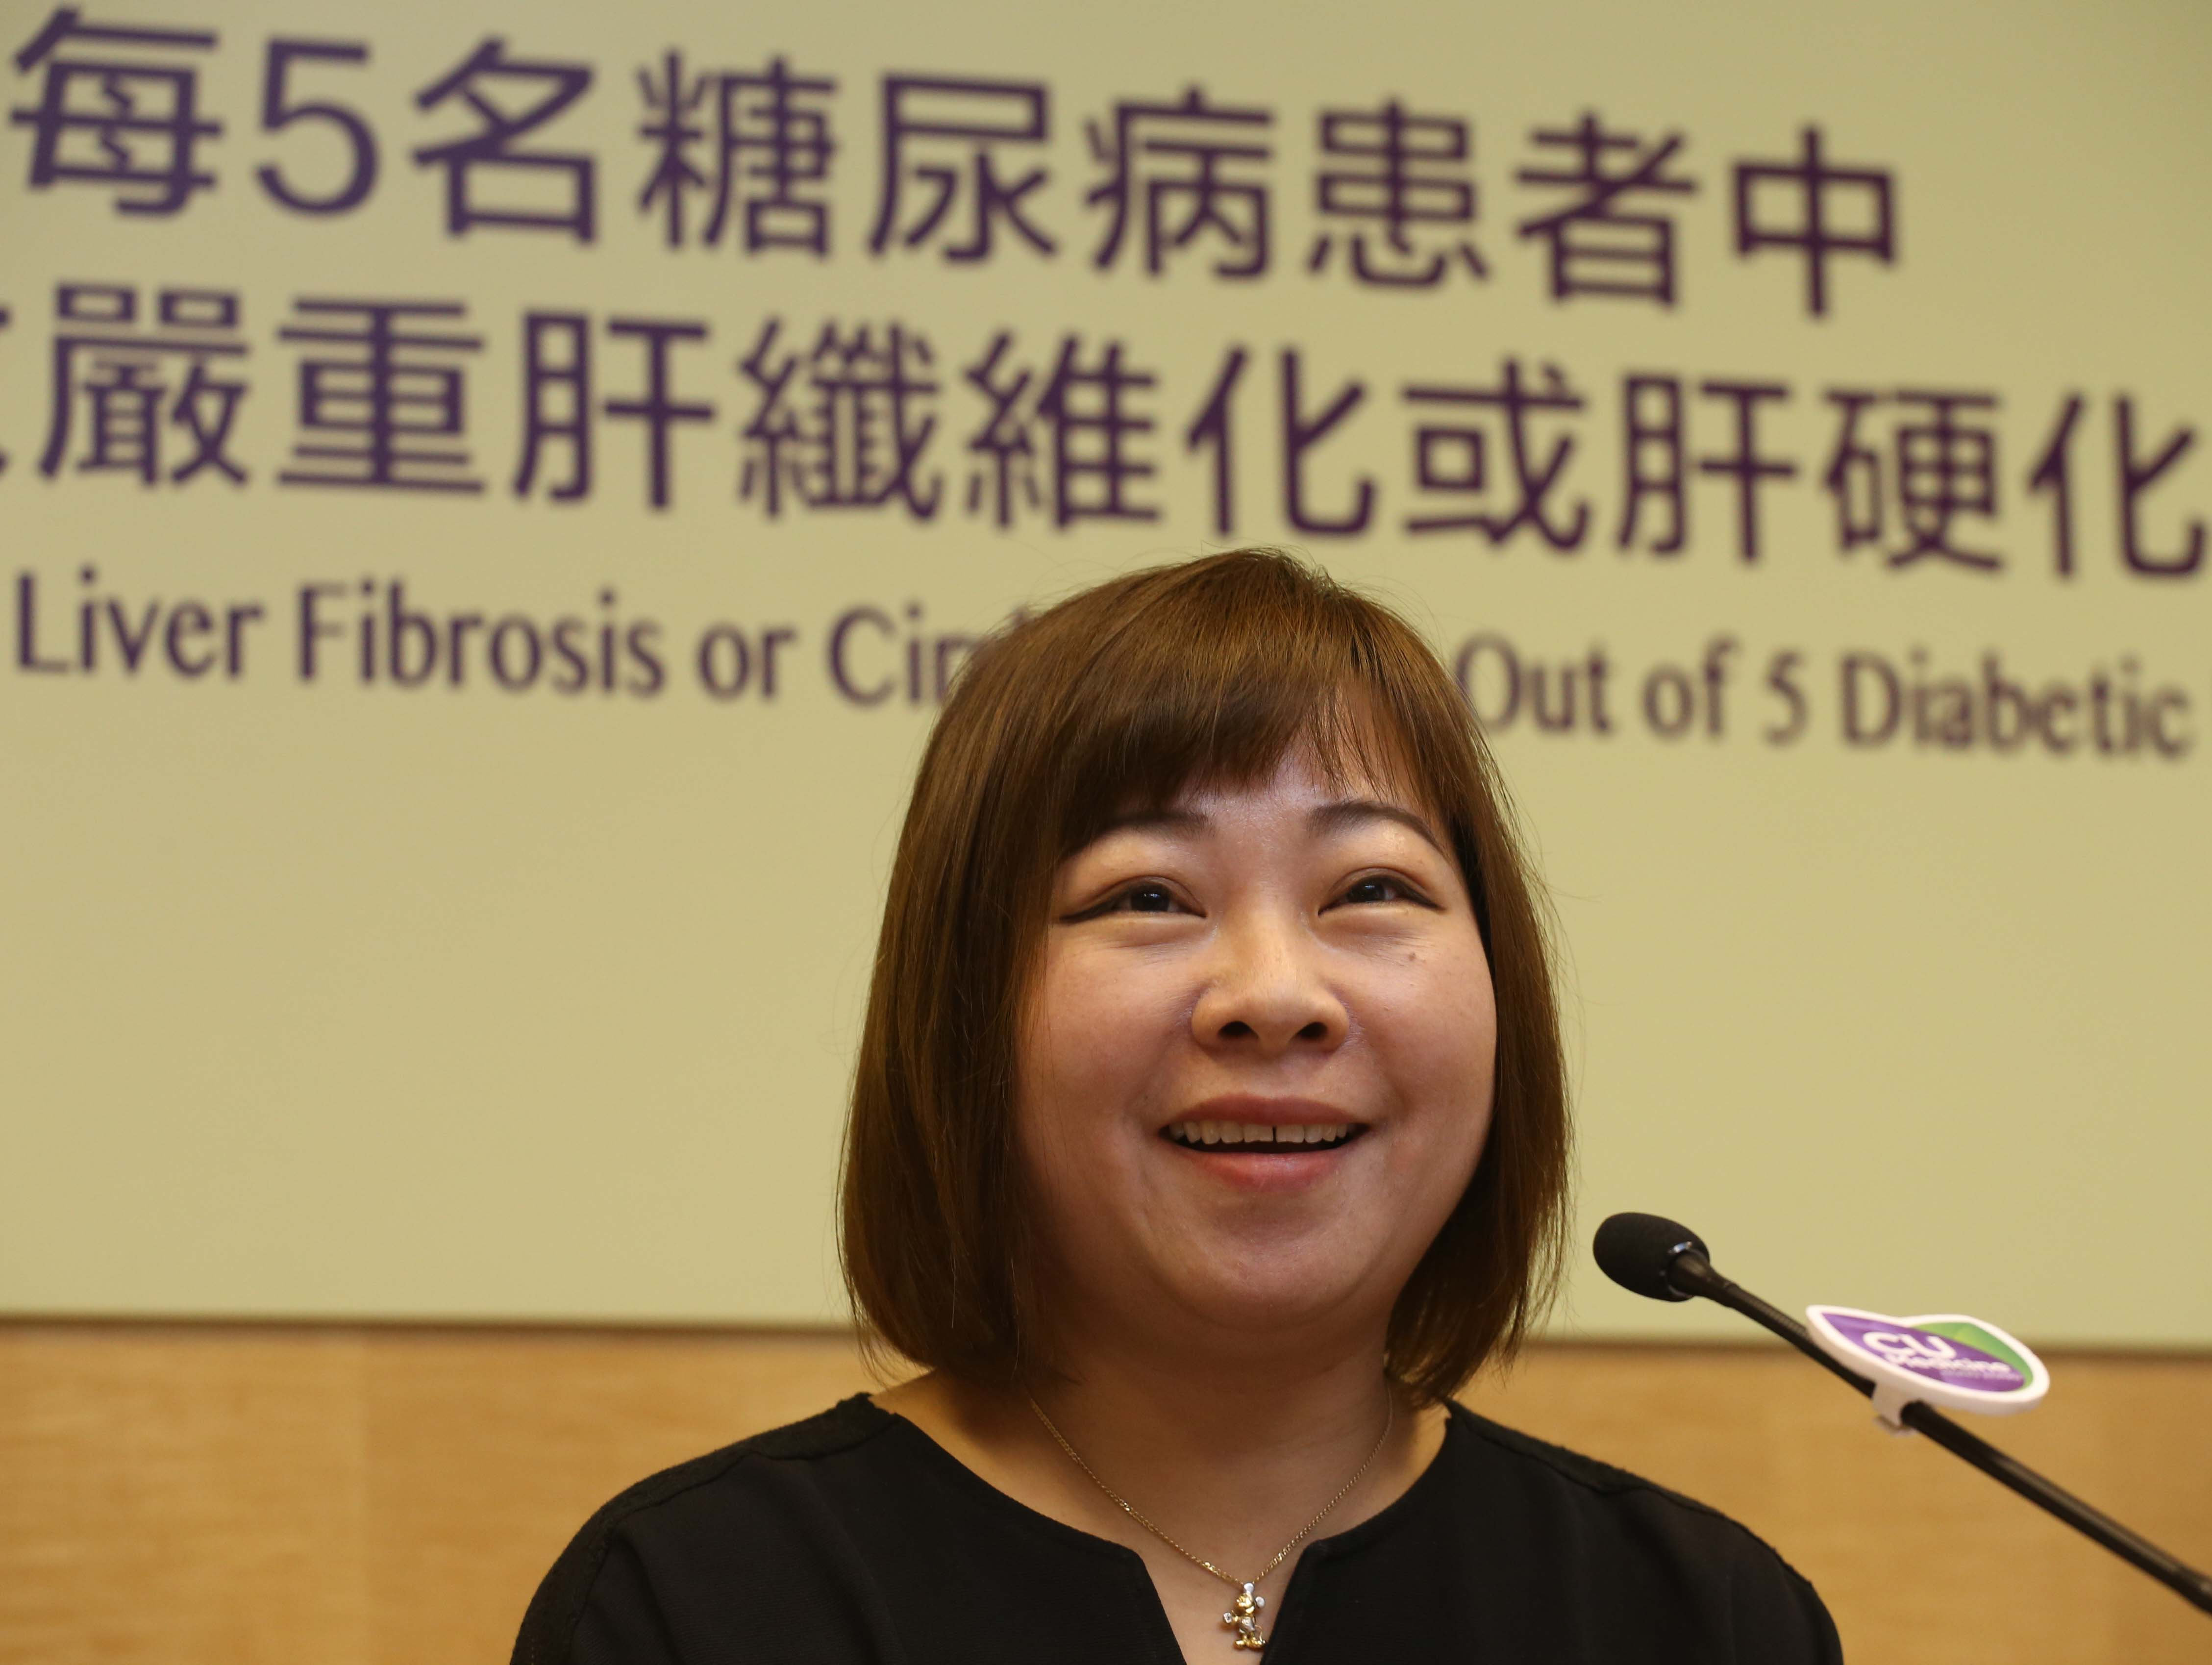 Diabetic patient Ms. Cheng has been monitoring diet and losing weight